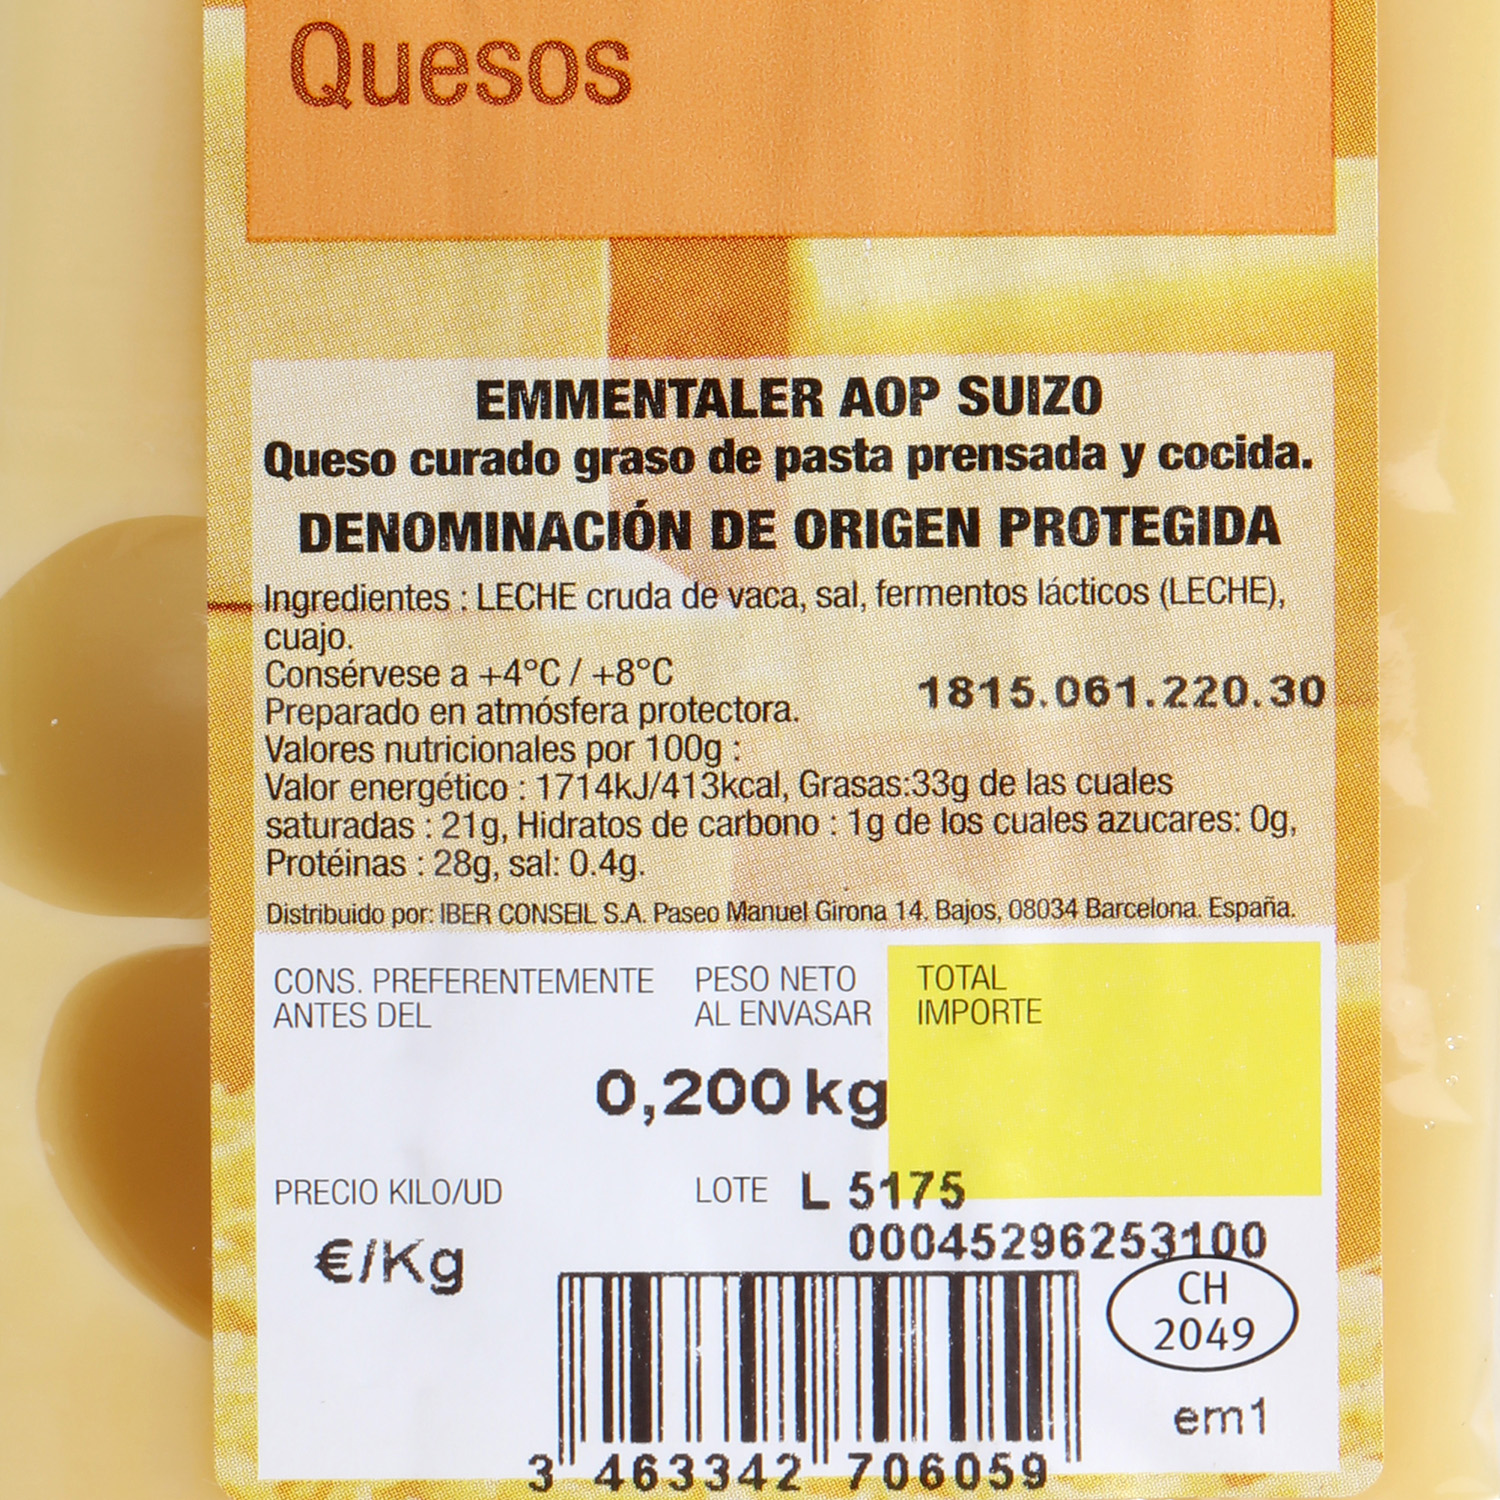 Queso Emmental suizo - 2